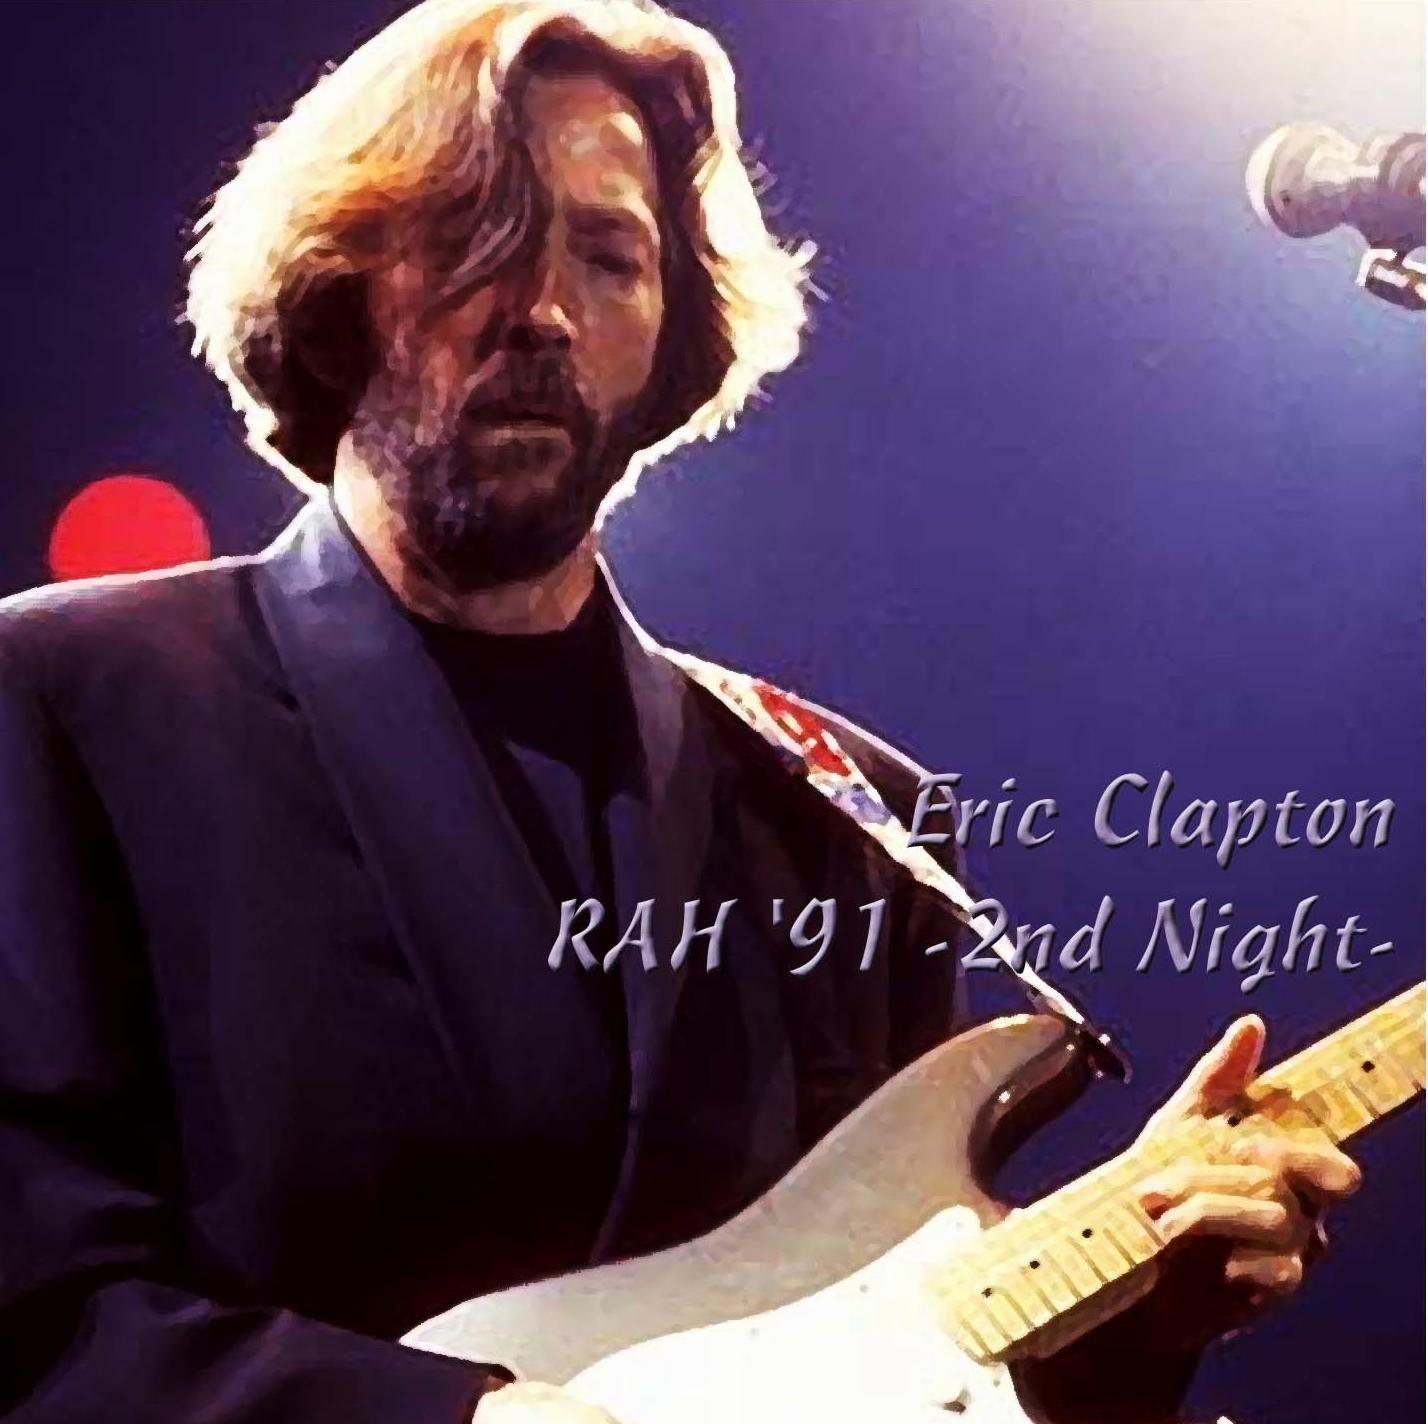 eric clapton royal albert hall london england february 6 1991. Black Bedroom Furniture Sets. Home Design Ideas